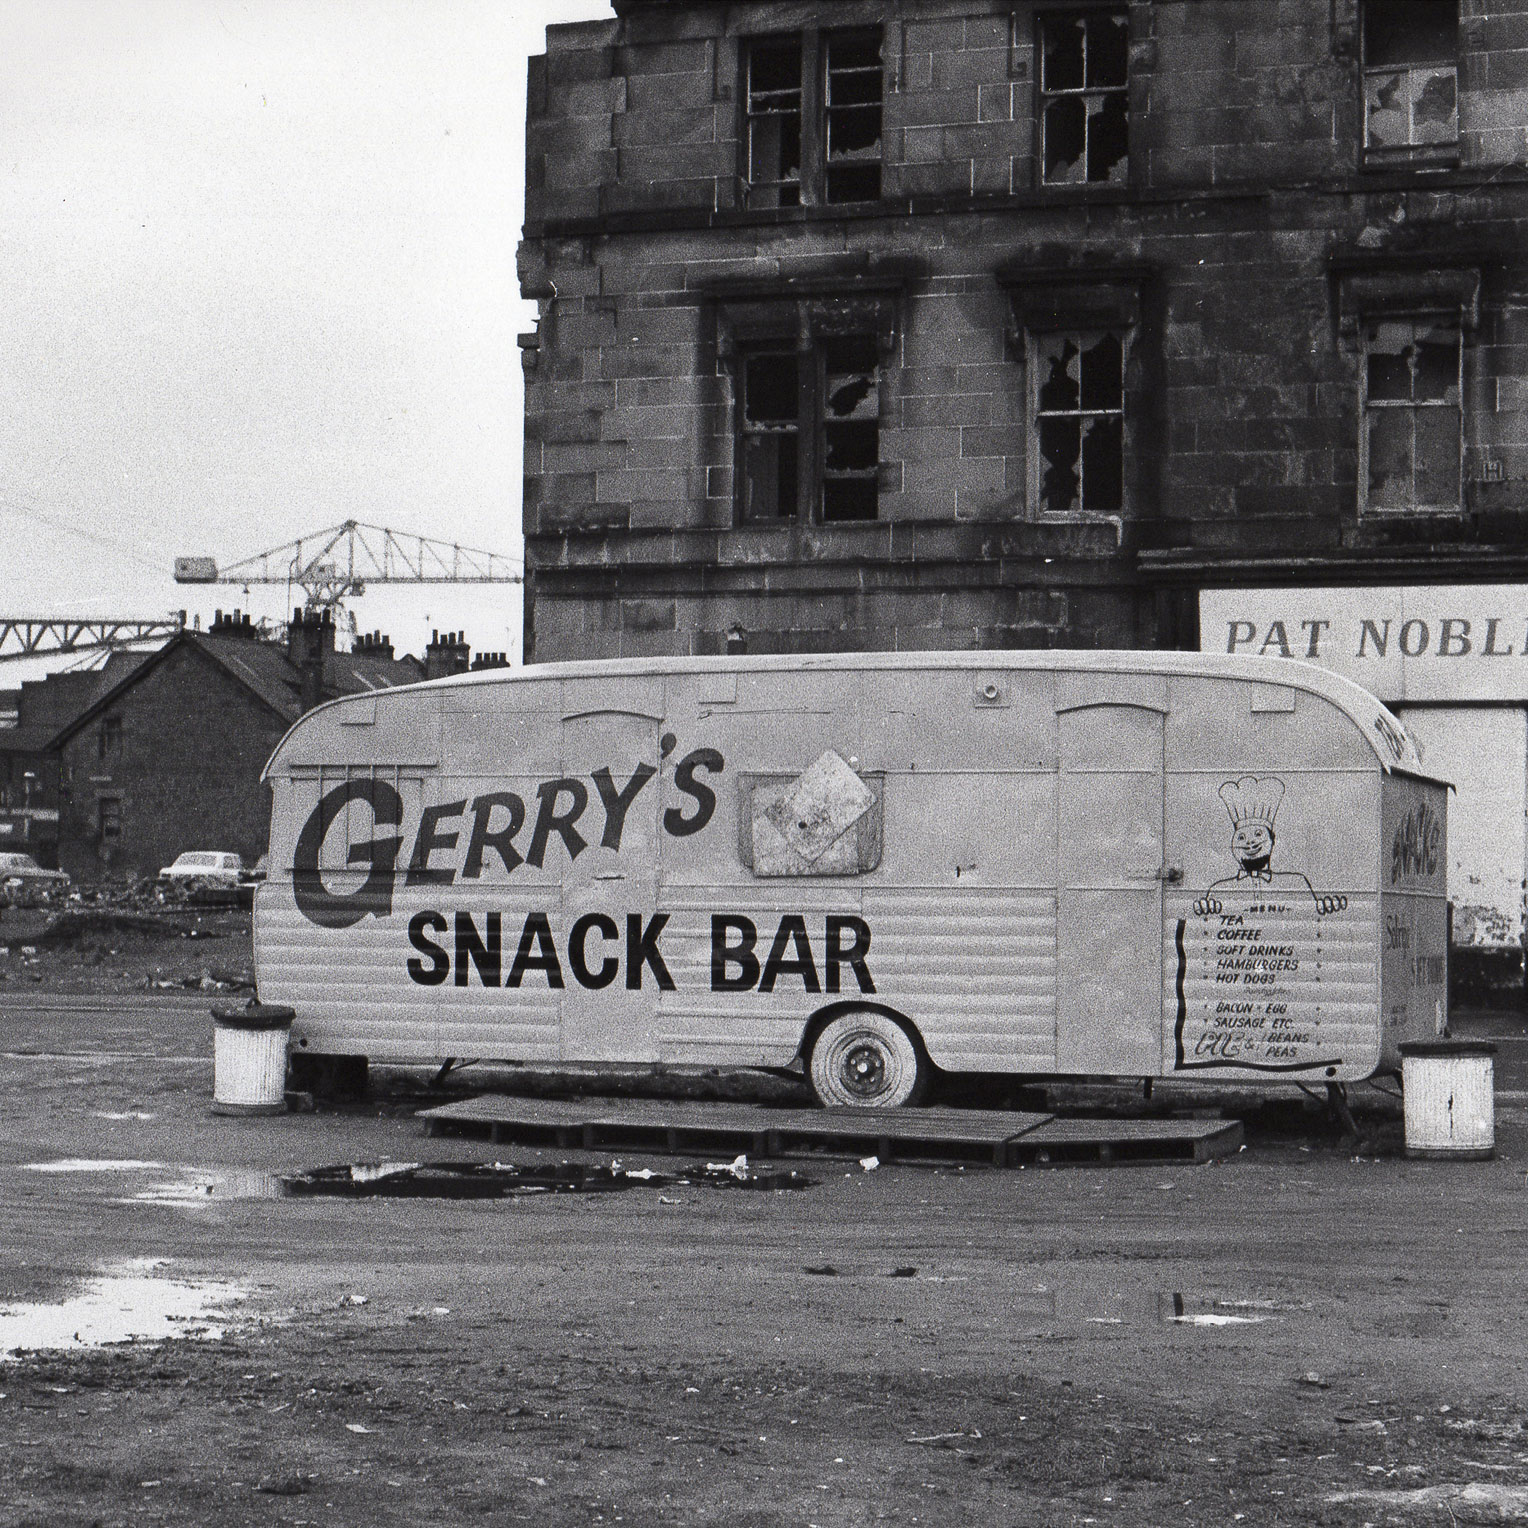 Image of Untitled, from 'Glasgow 1974' (Gerry's Snack Bar) by Hugh Hood